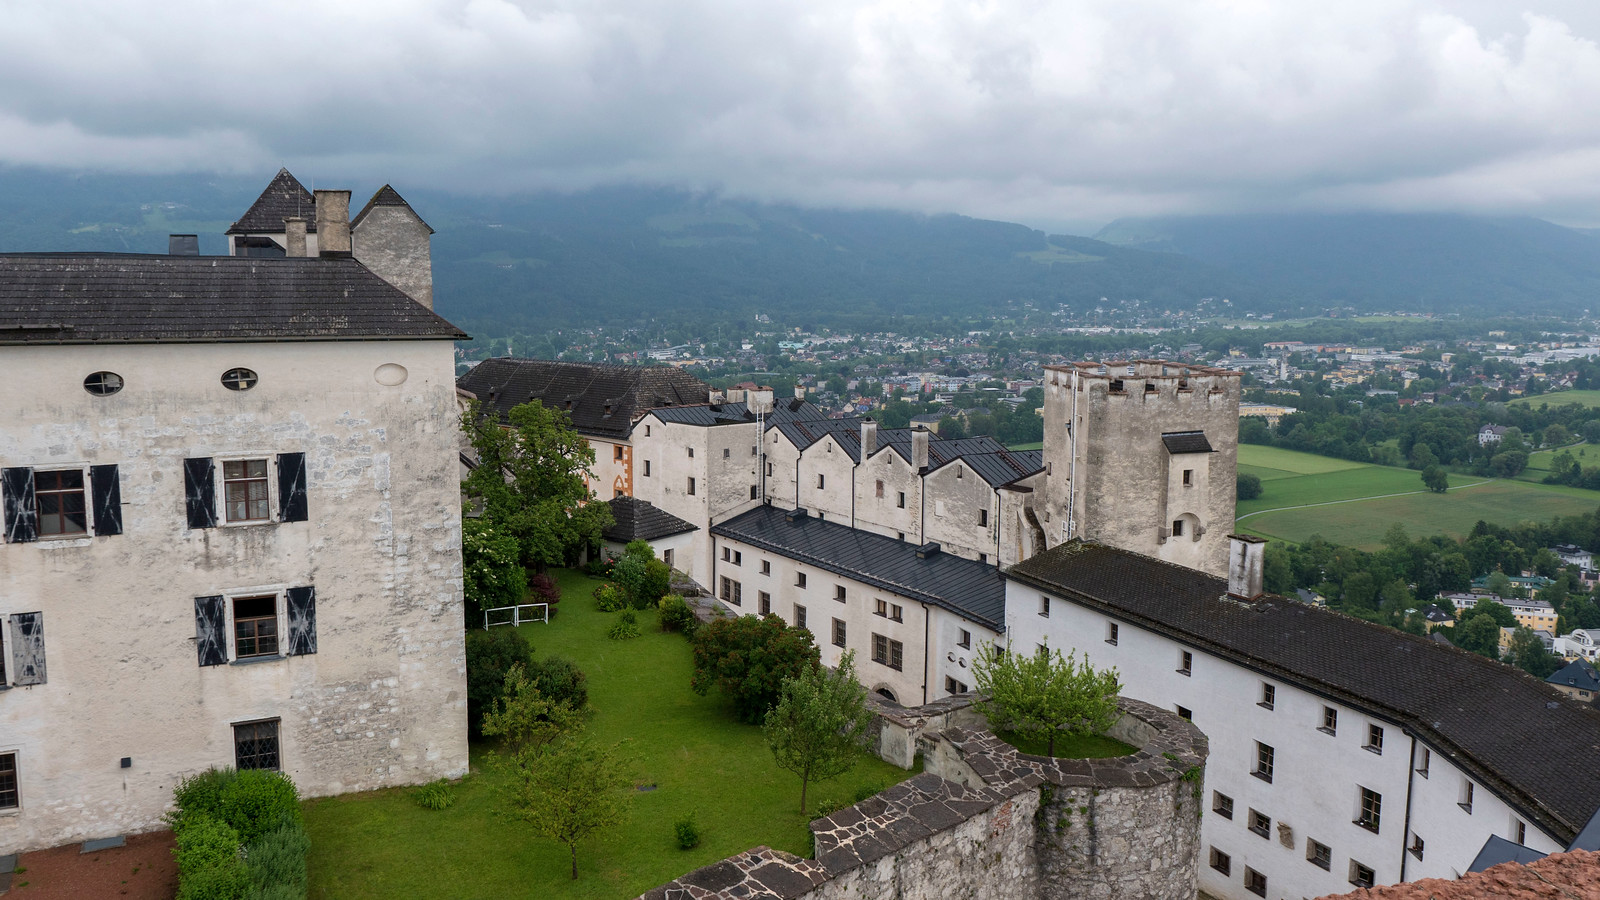 Things to Do in Salzburg - Hohensalzburg Castle / Hohensalzburg Fortress